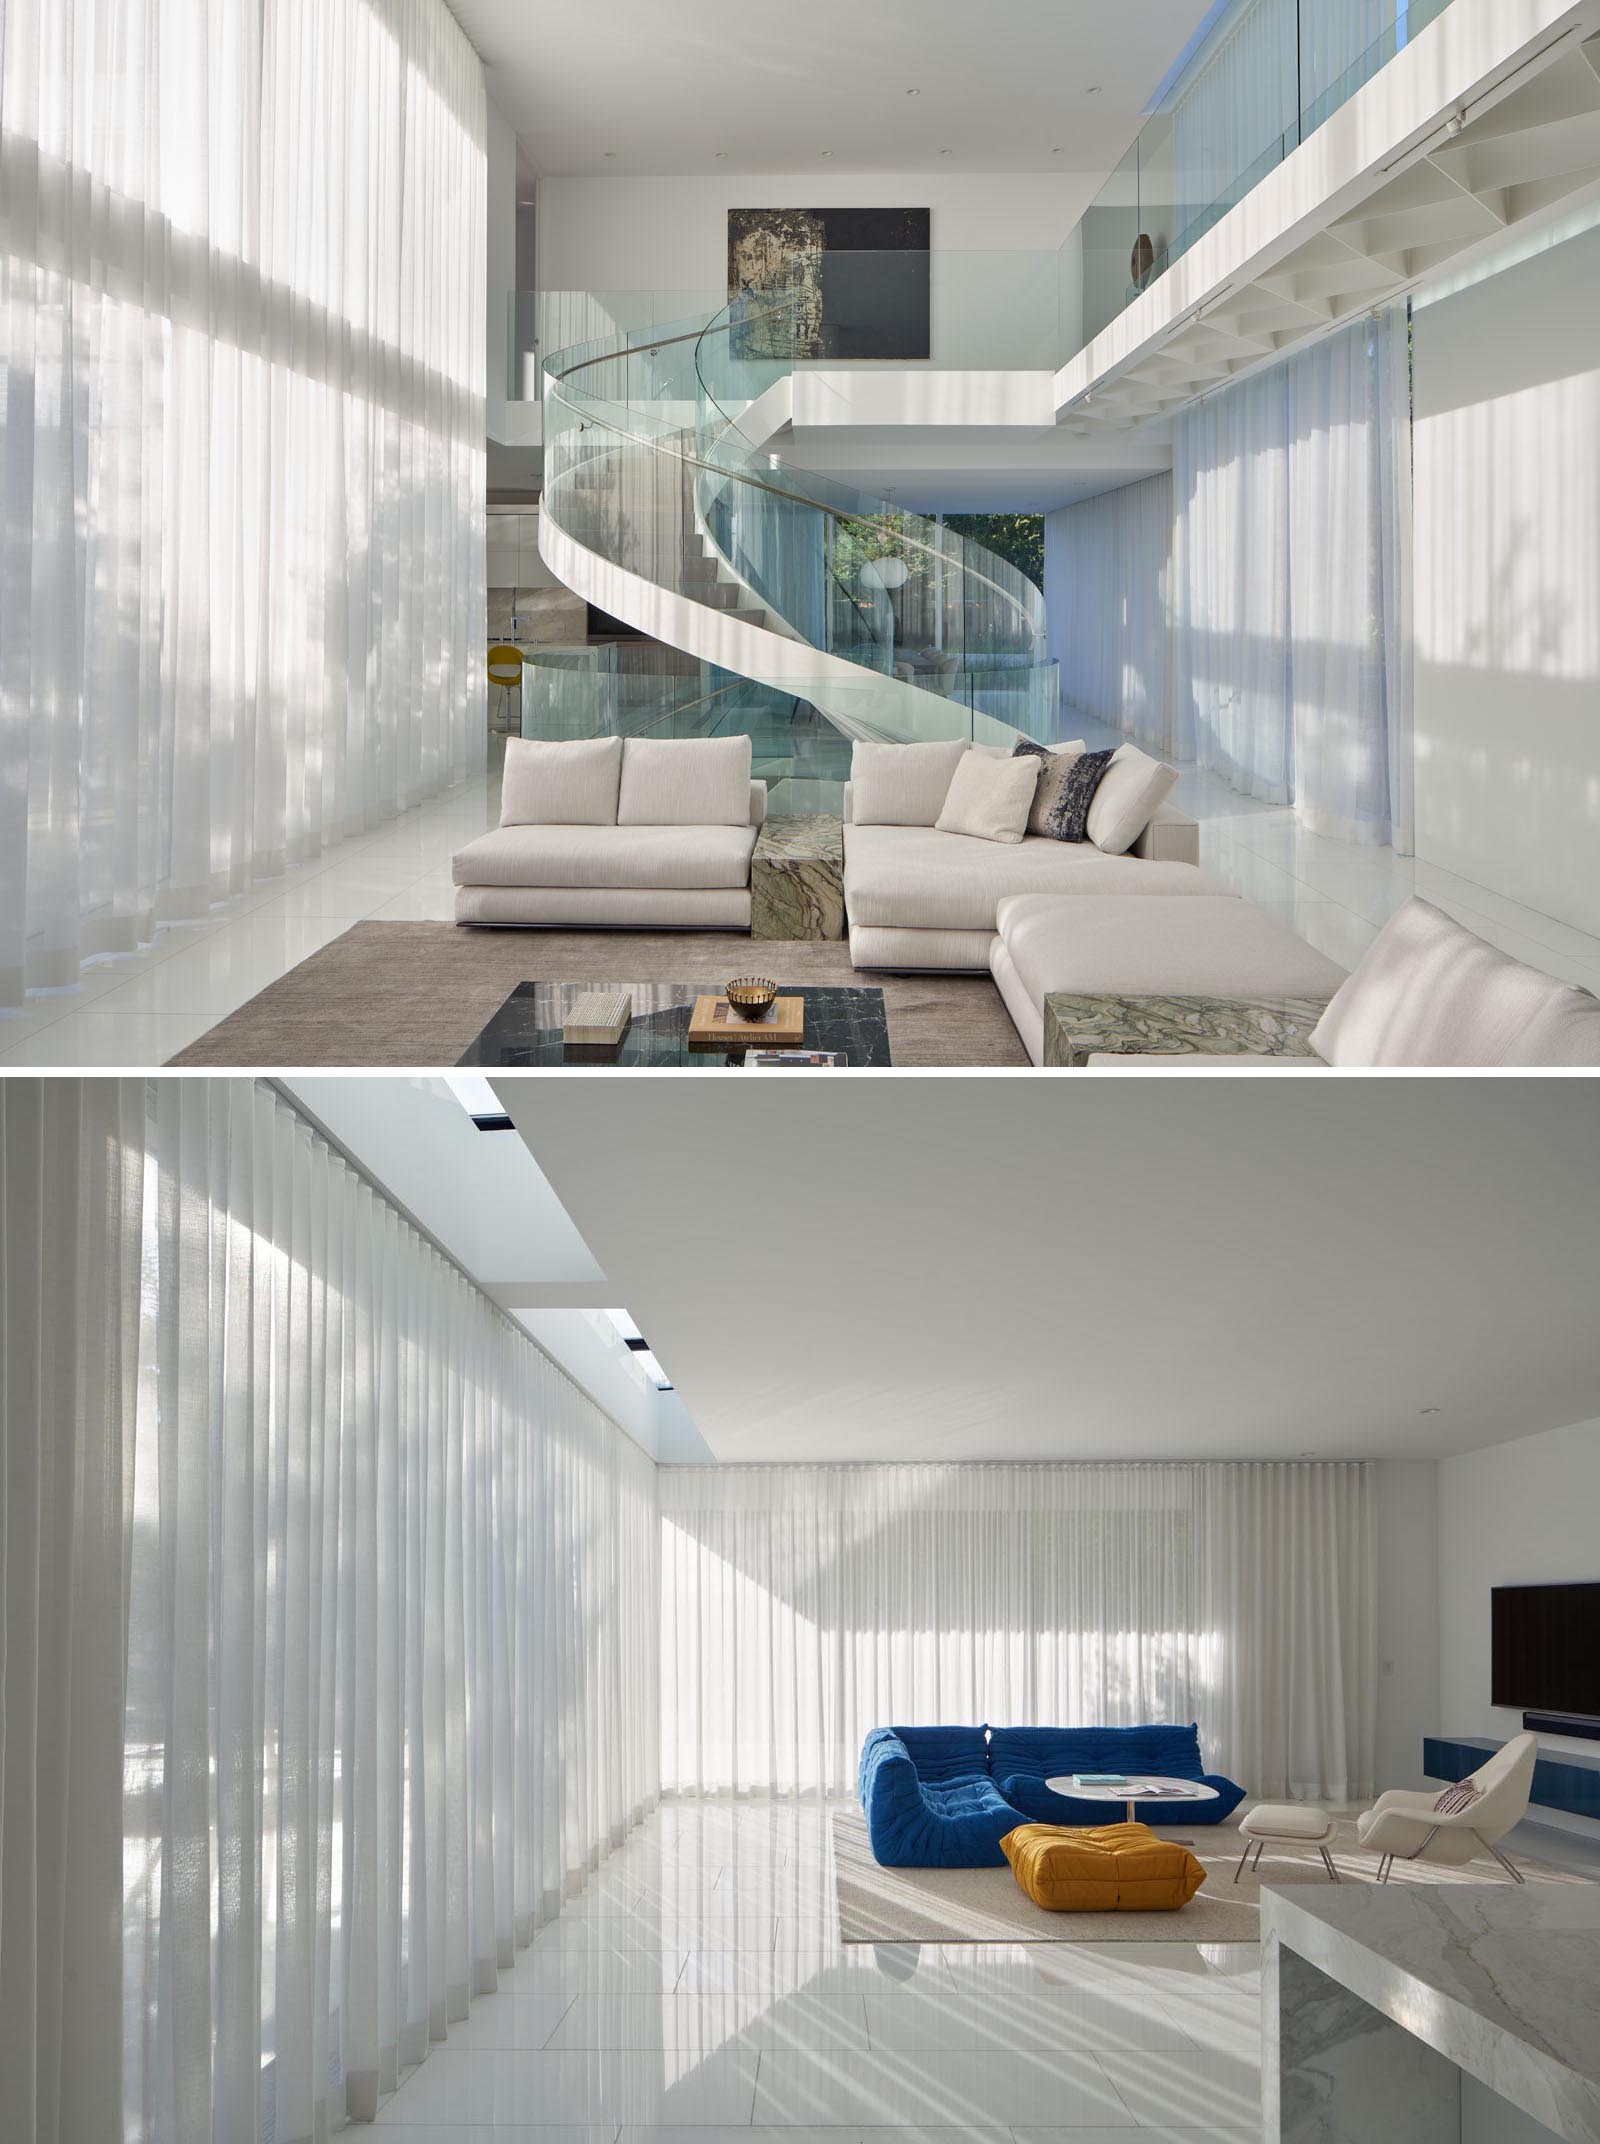 This modern living room has pocketing sliding glass doors that dissolve the boundary between inside and outside. At night, white curtains can be closed for privacy.